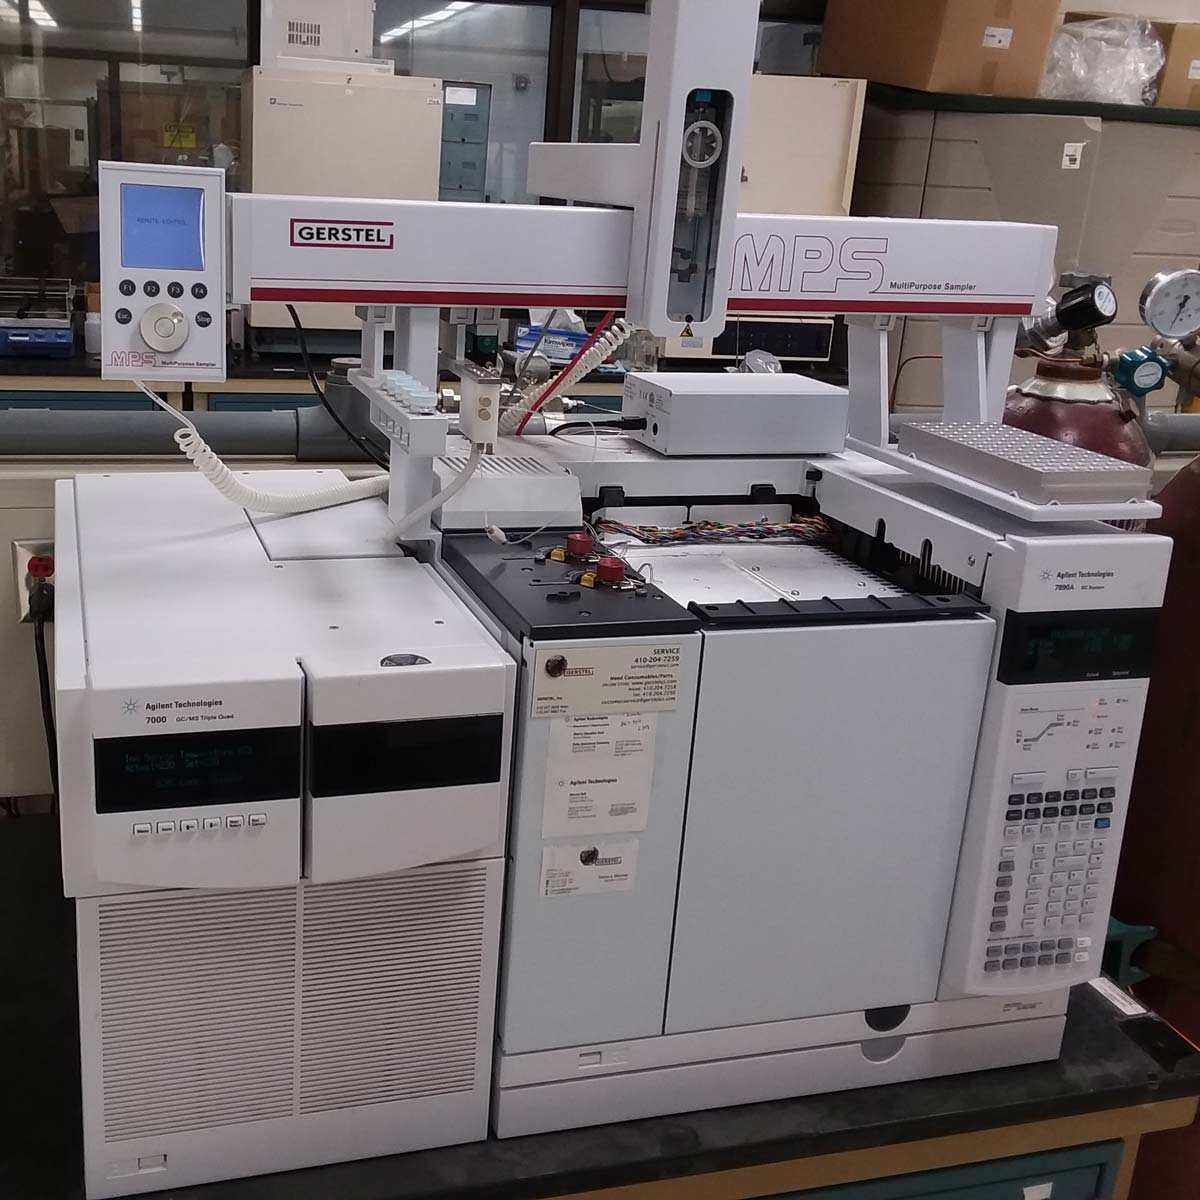 Agilent 7890A GC System with 7000 GC/MS Triple Quadrupole and Gerstel MPS MultiPurpose Sampler Image